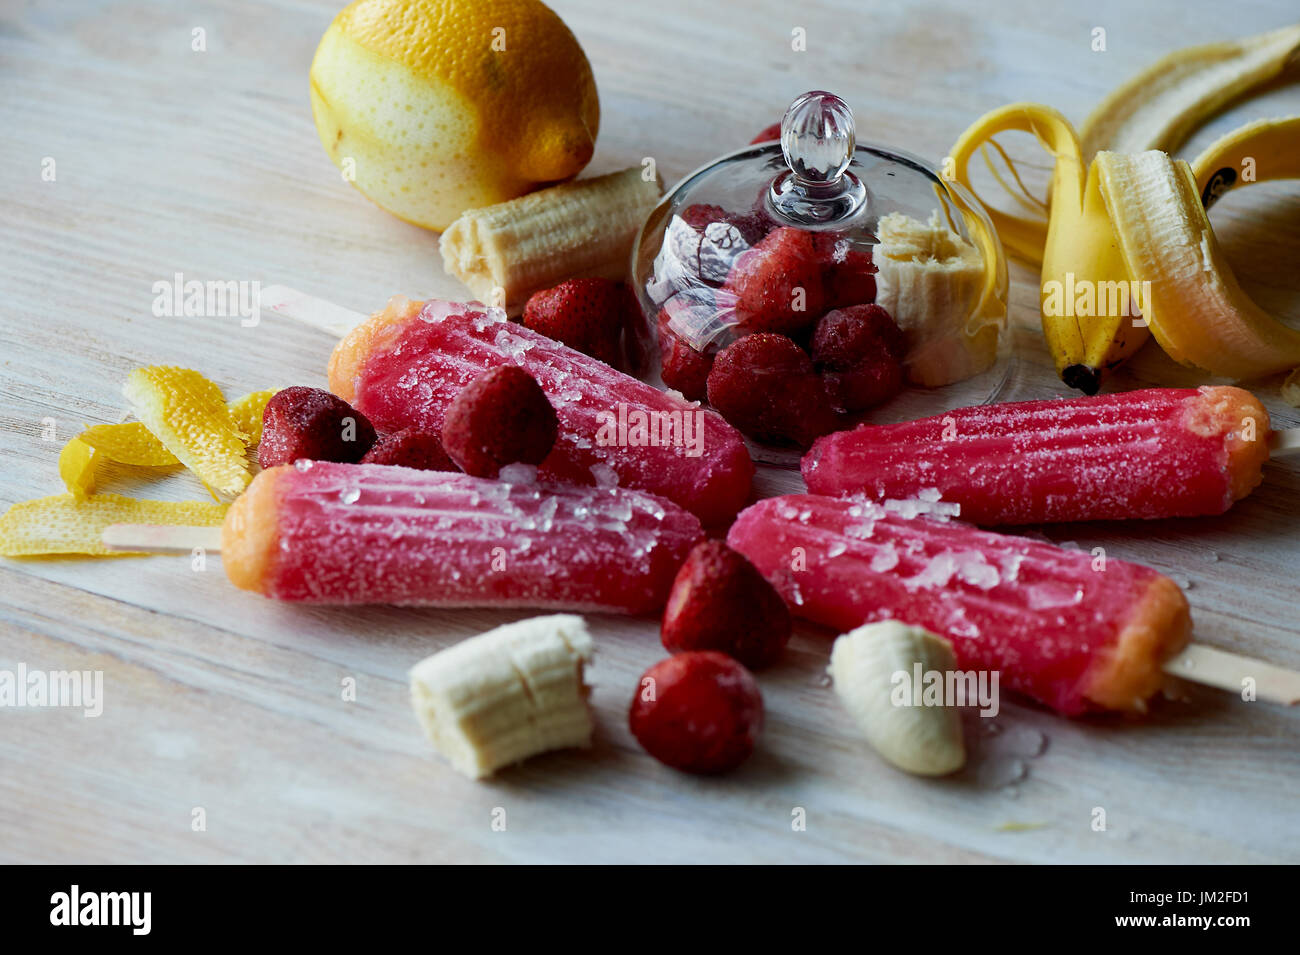 Youth ice pop from the freezer. with a touch of frost and ice. Refreshing in the heat . - Stock Image